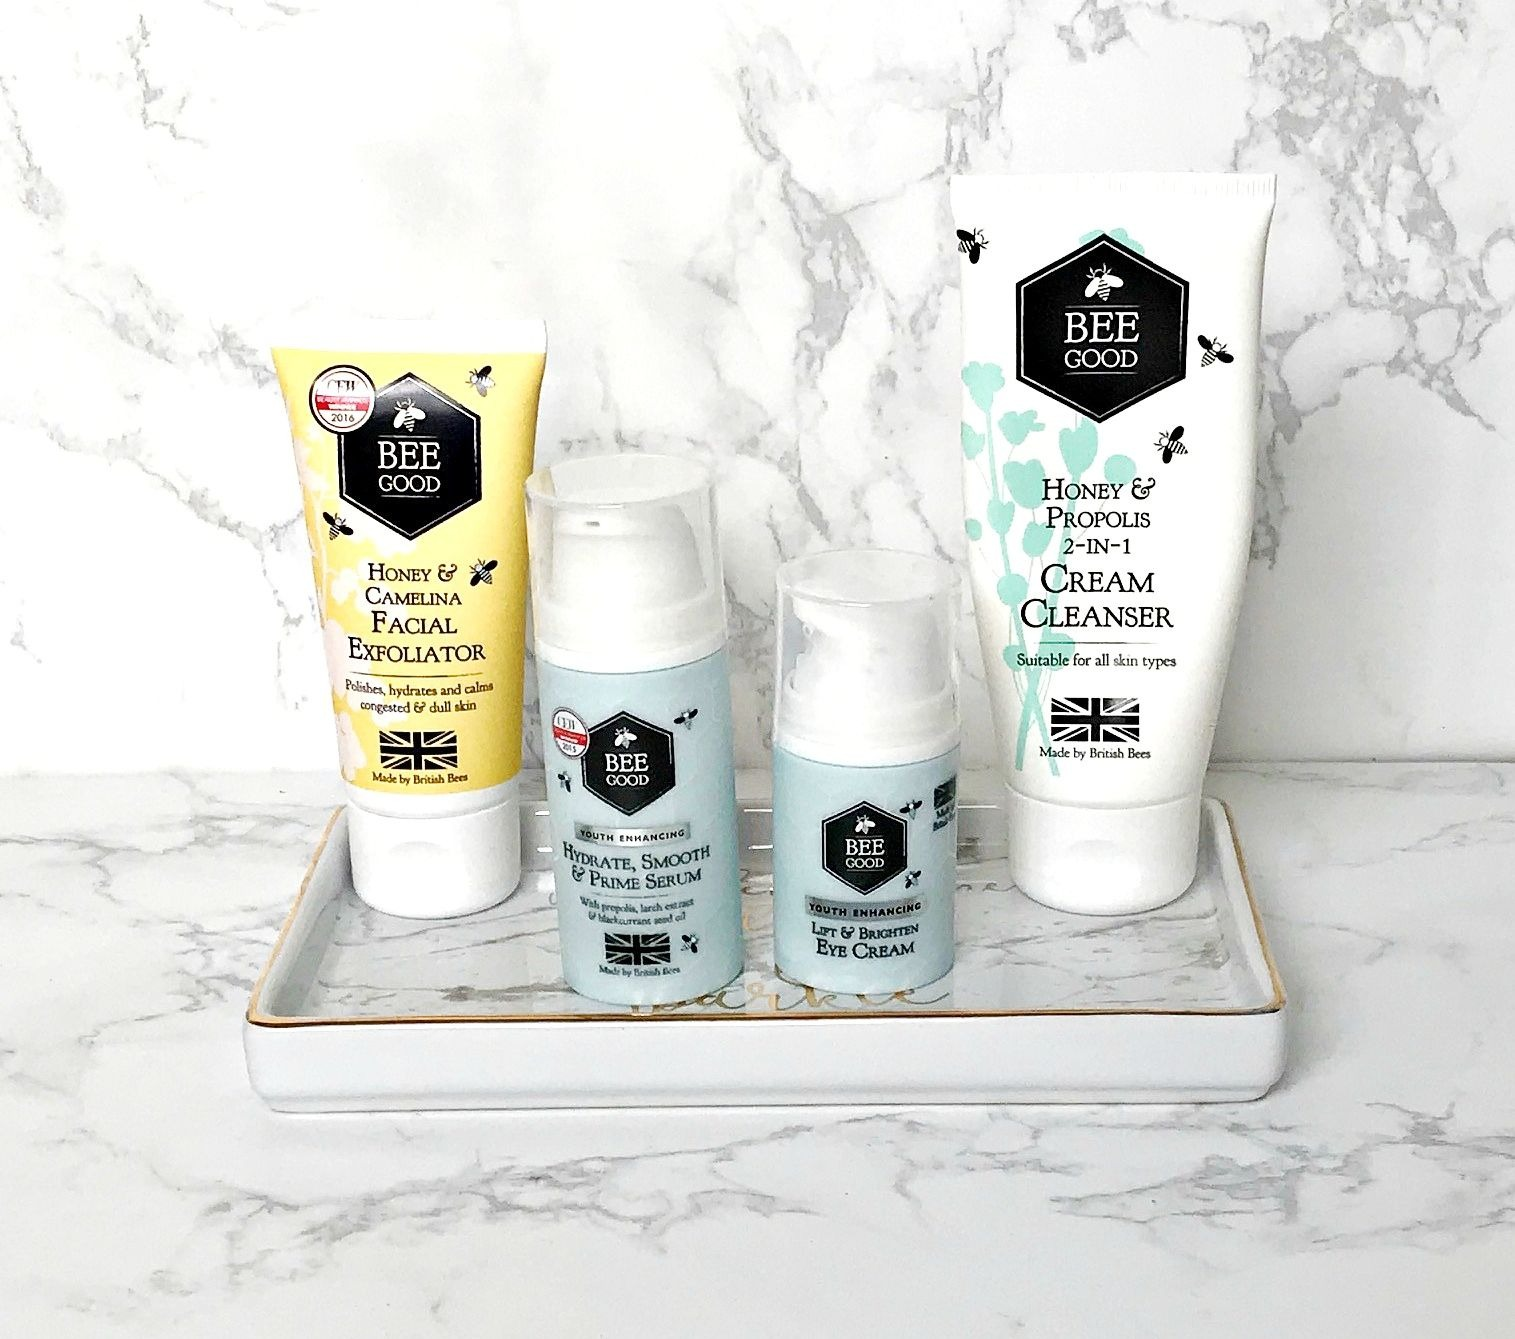 Bee Good Honey & Propolis 2-in-1 Cream Cleanser, Giveaway, Bee Good Youth Enhancing Hydrate, Smooth & Prime Serum, Bee Good Youth Enhancing Lift & Brighten Eye Cream